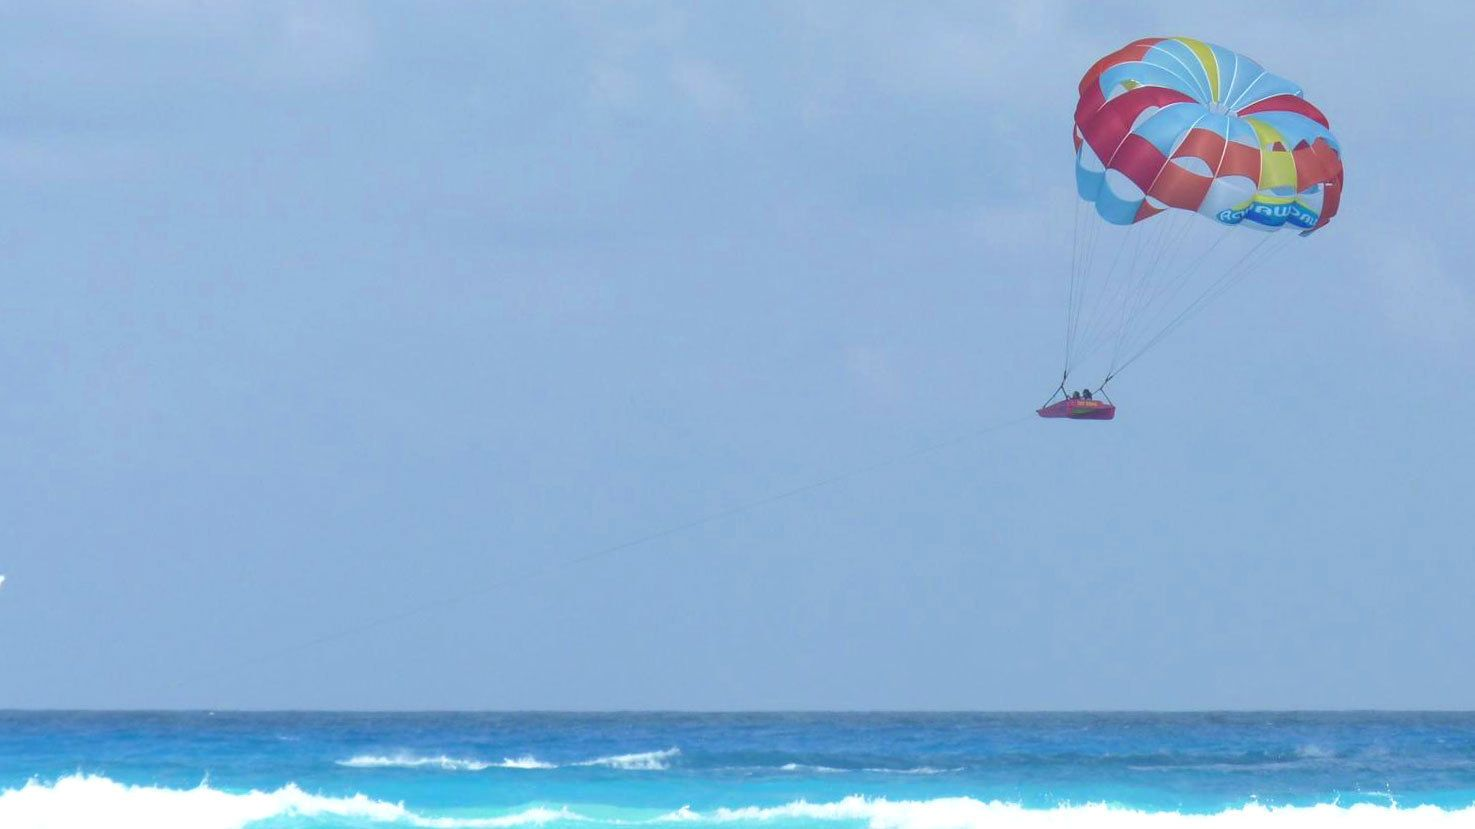 parasailing inside a small raft in Miami